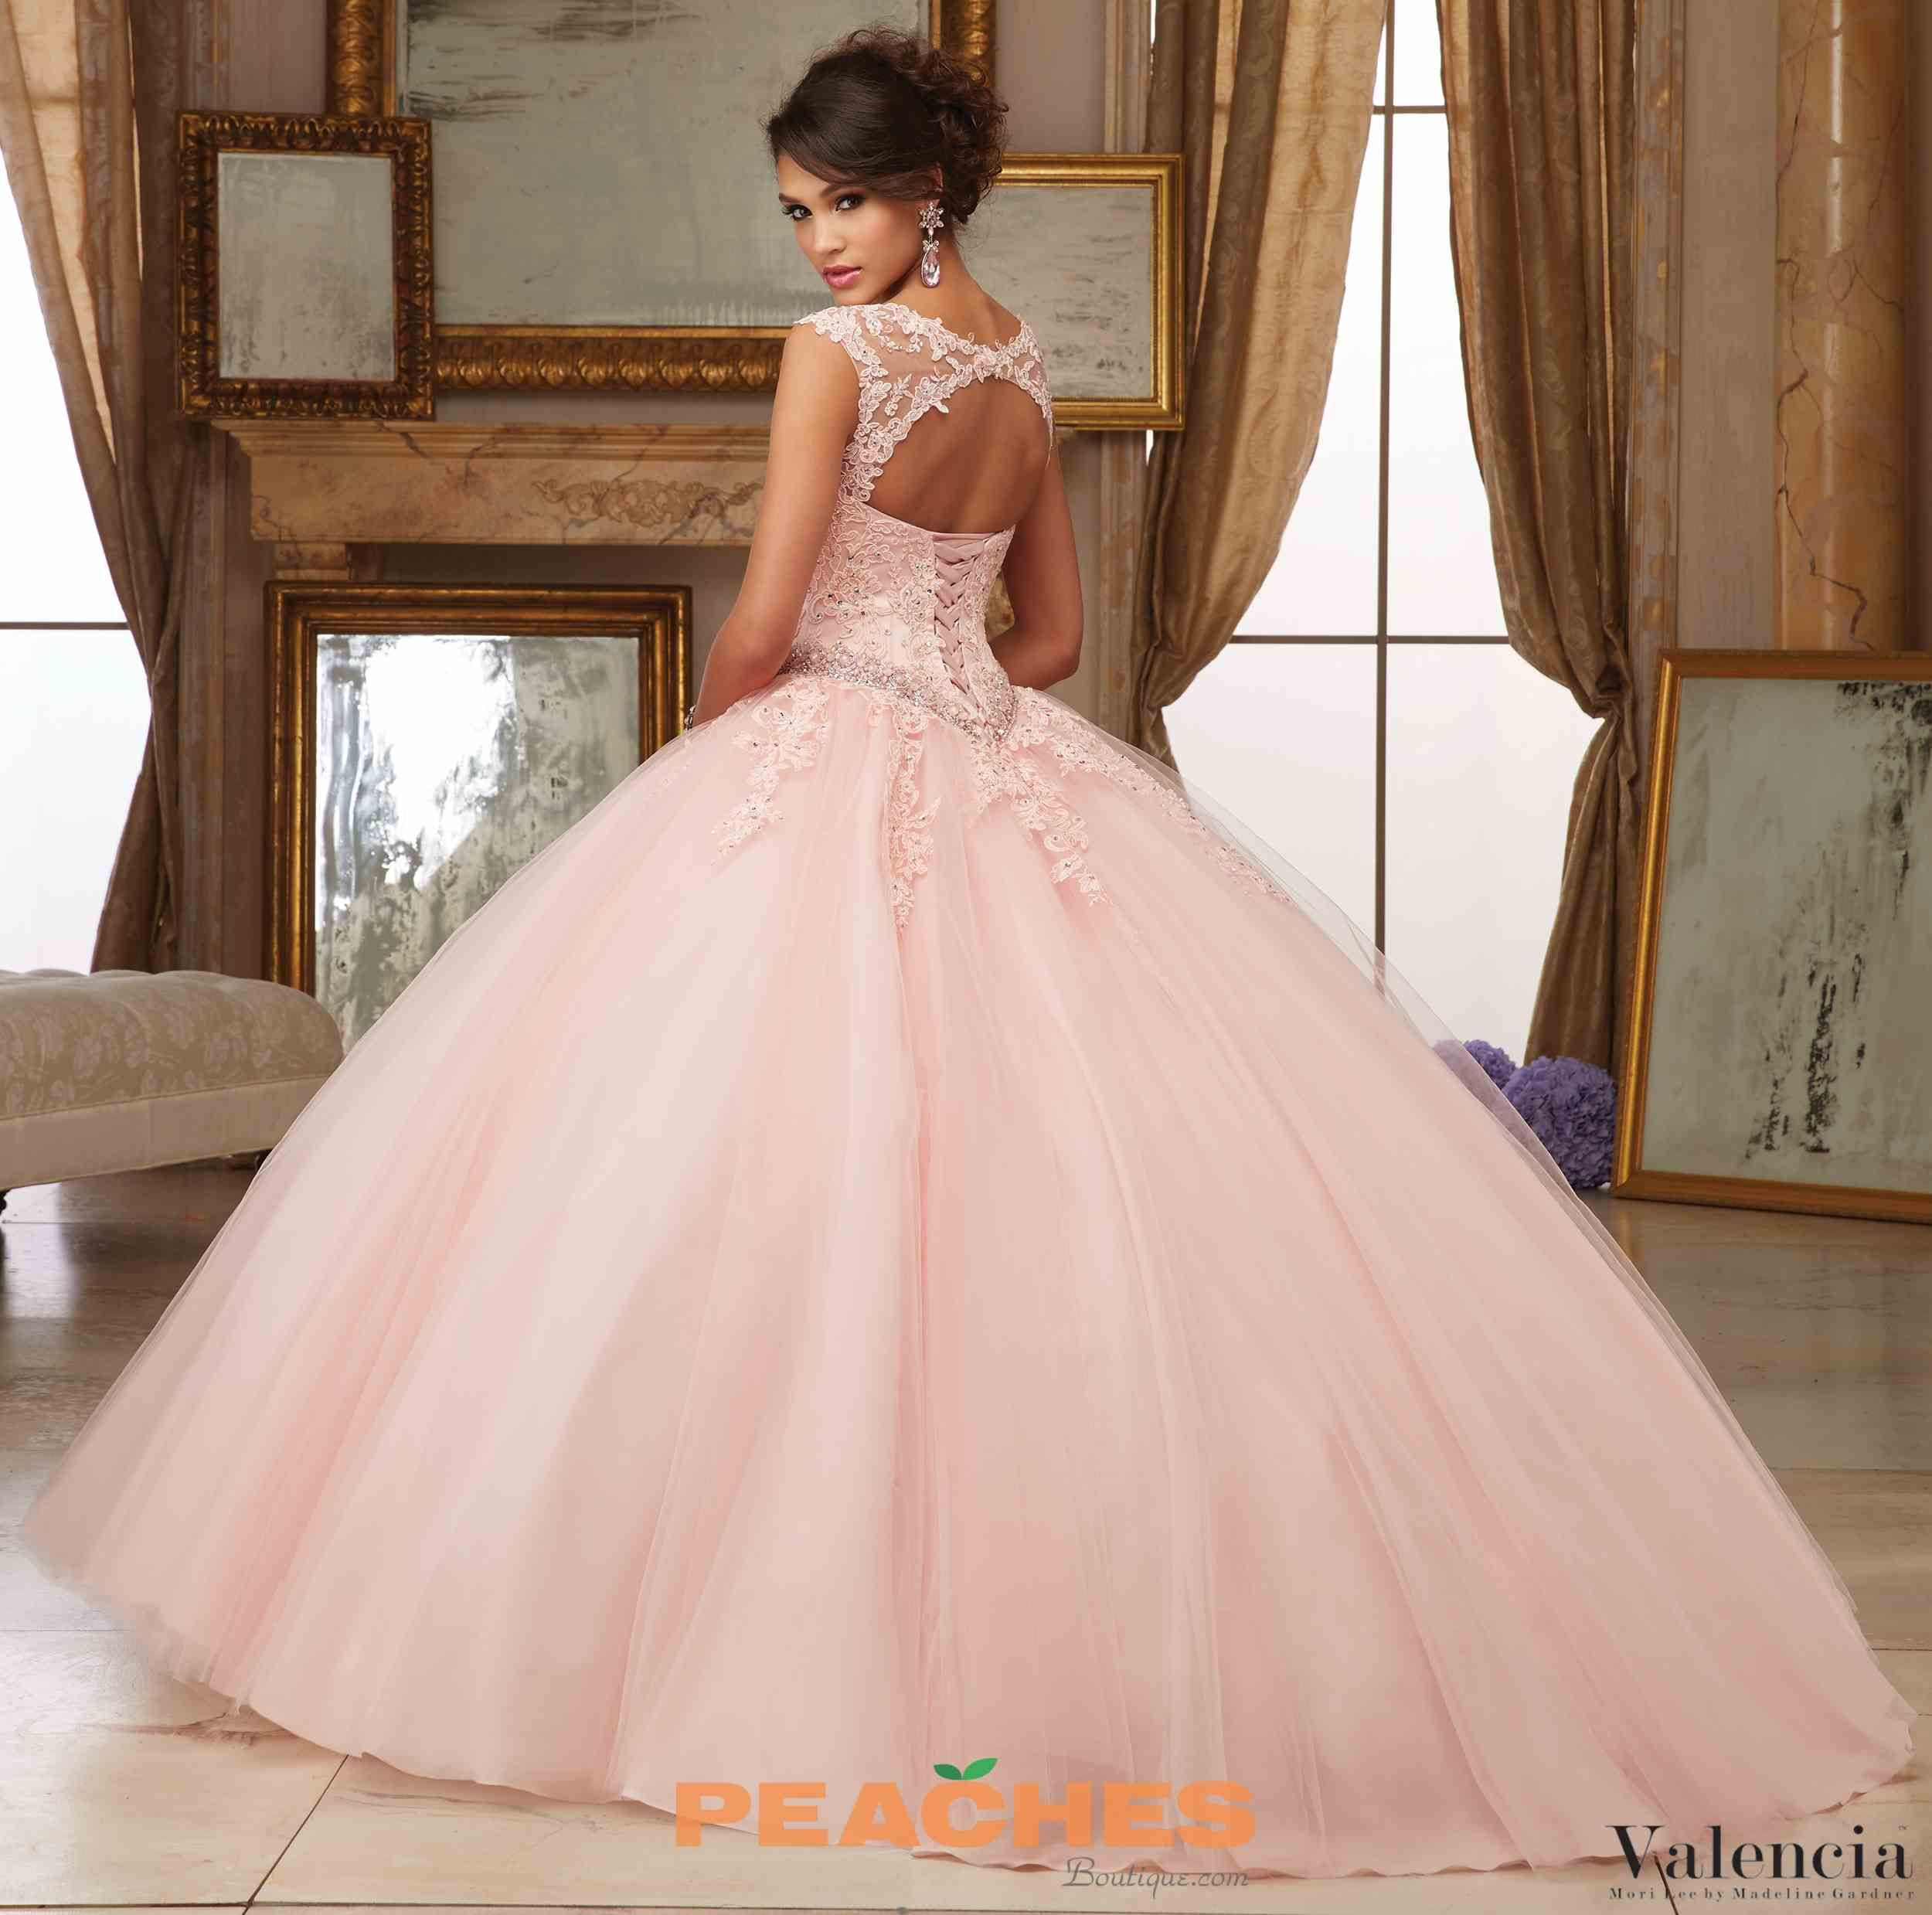 Valencia by Vizcaya Lace Ball Gown 60006 | Dream Prom dresses ...